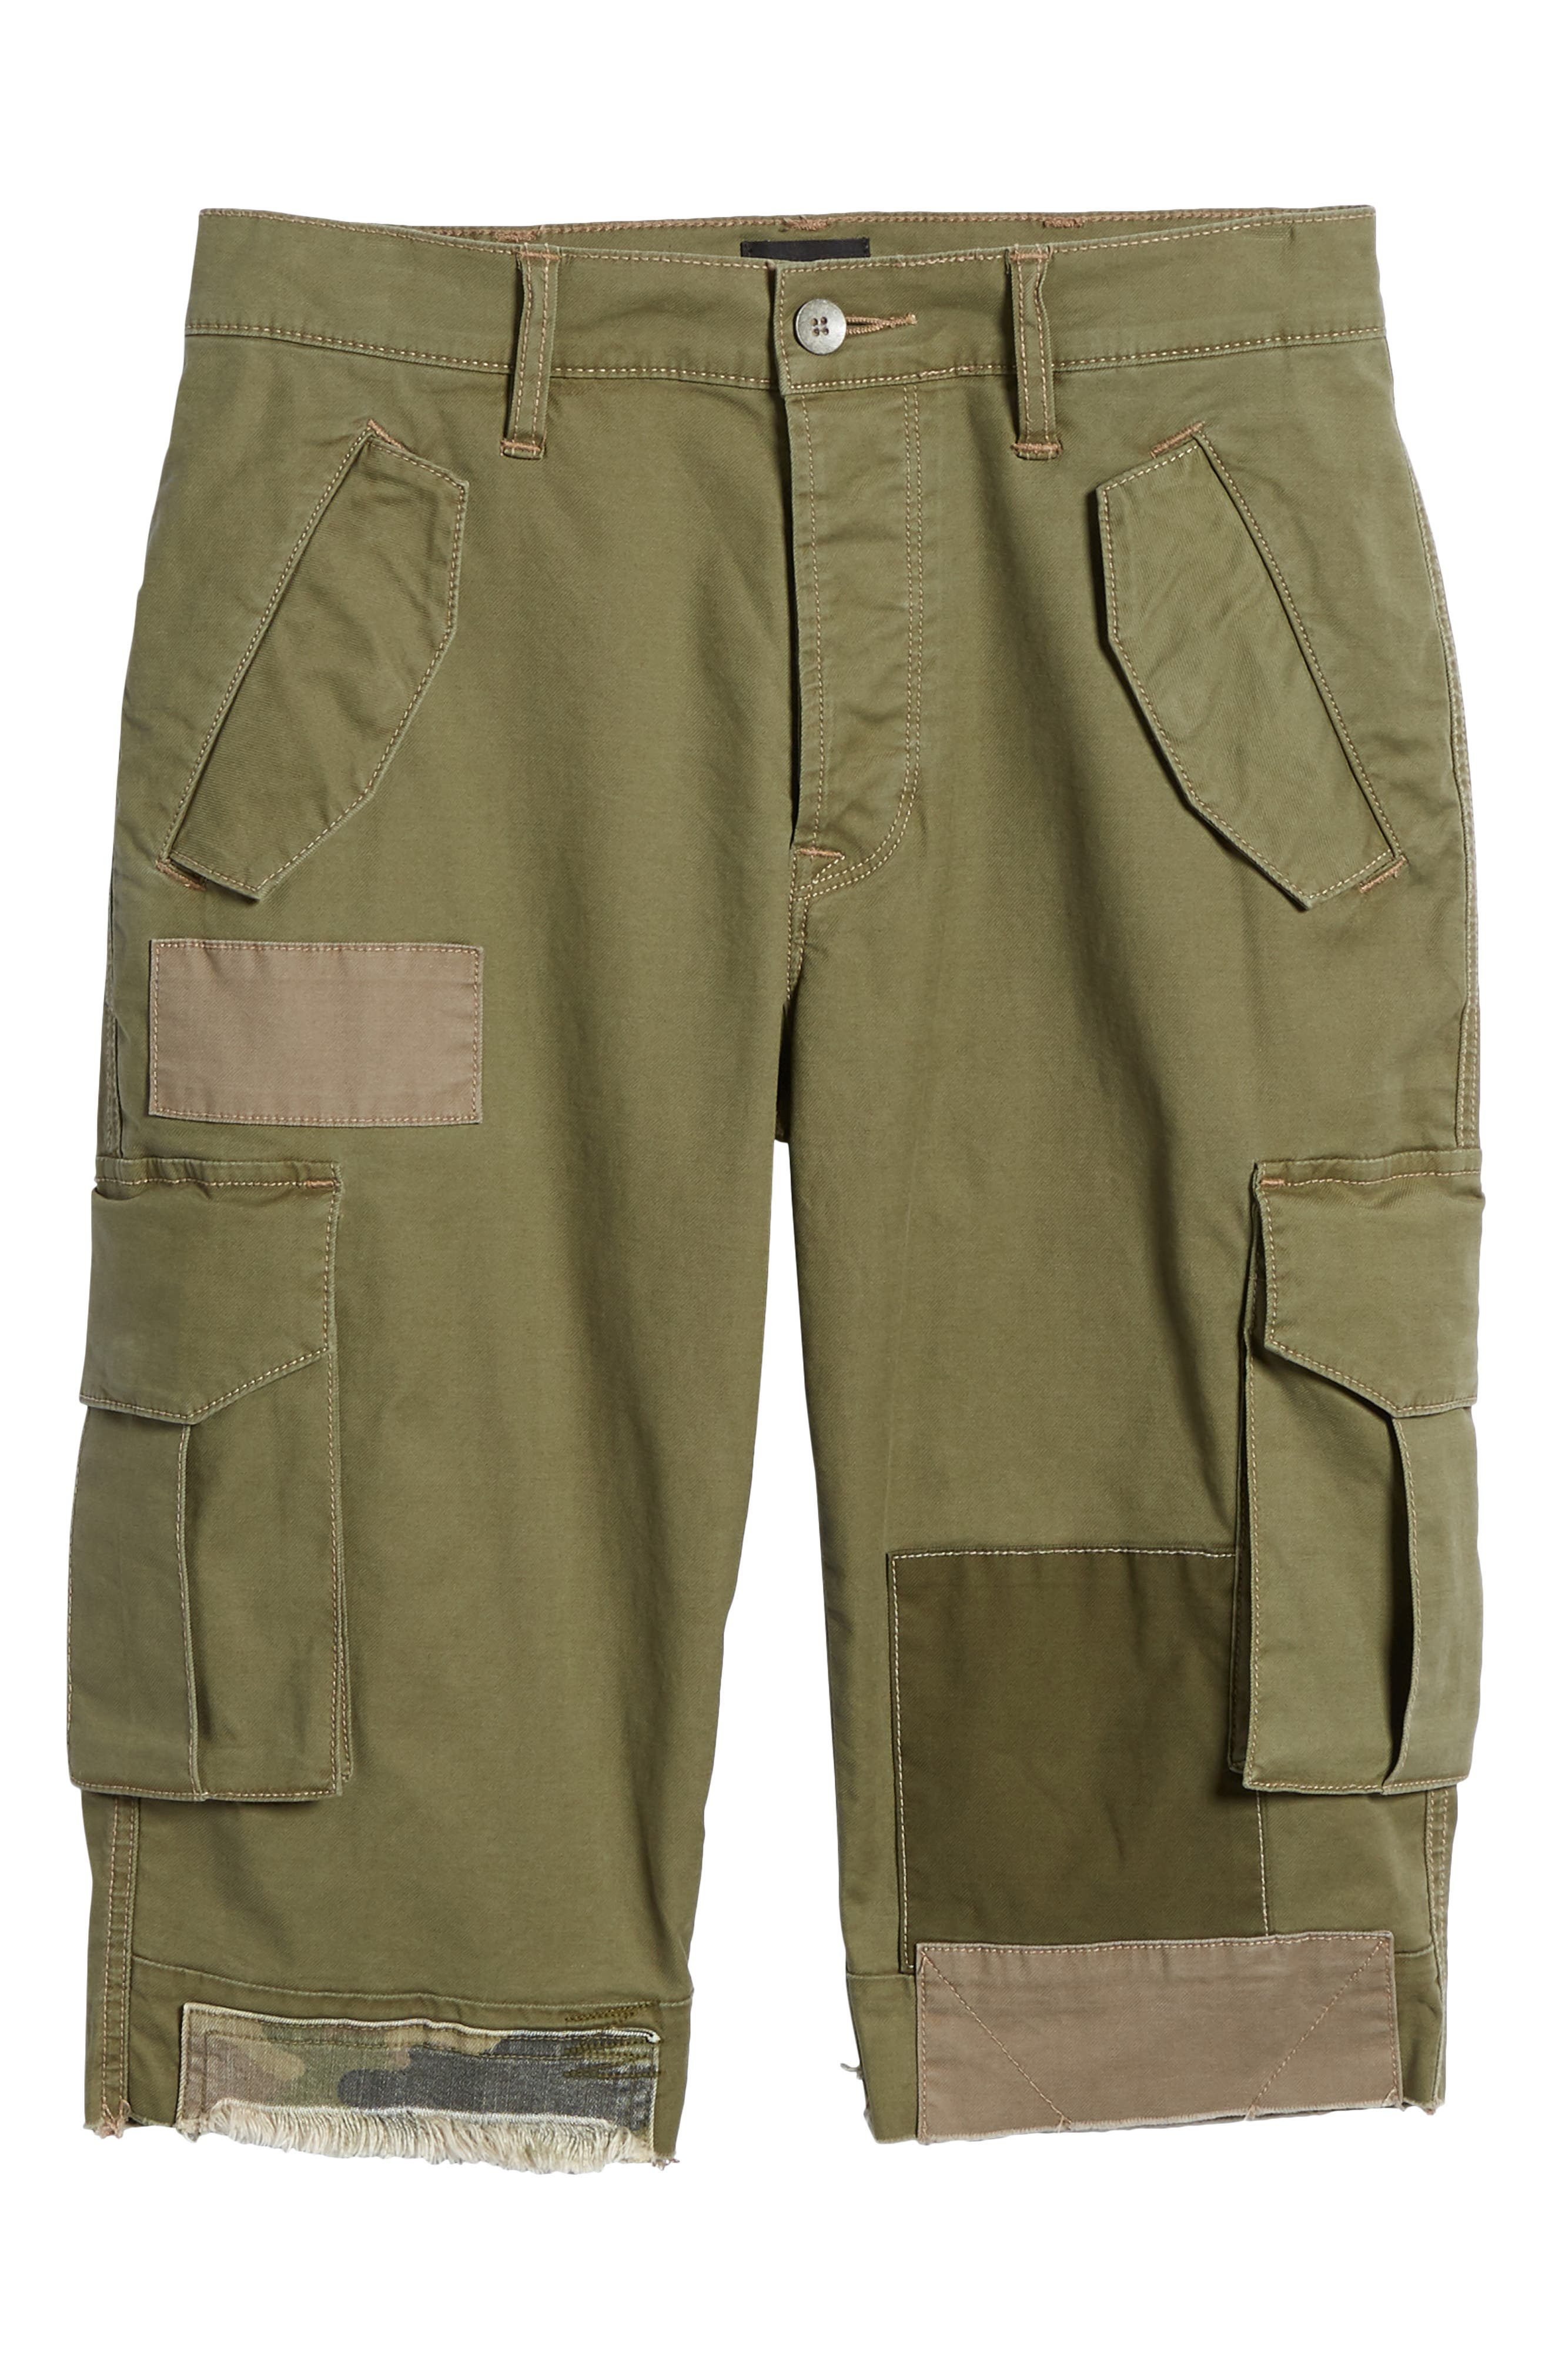 Slim Fit Cargo Shorts,                             Alternate thumbnail 6, color,                             Army Green 2